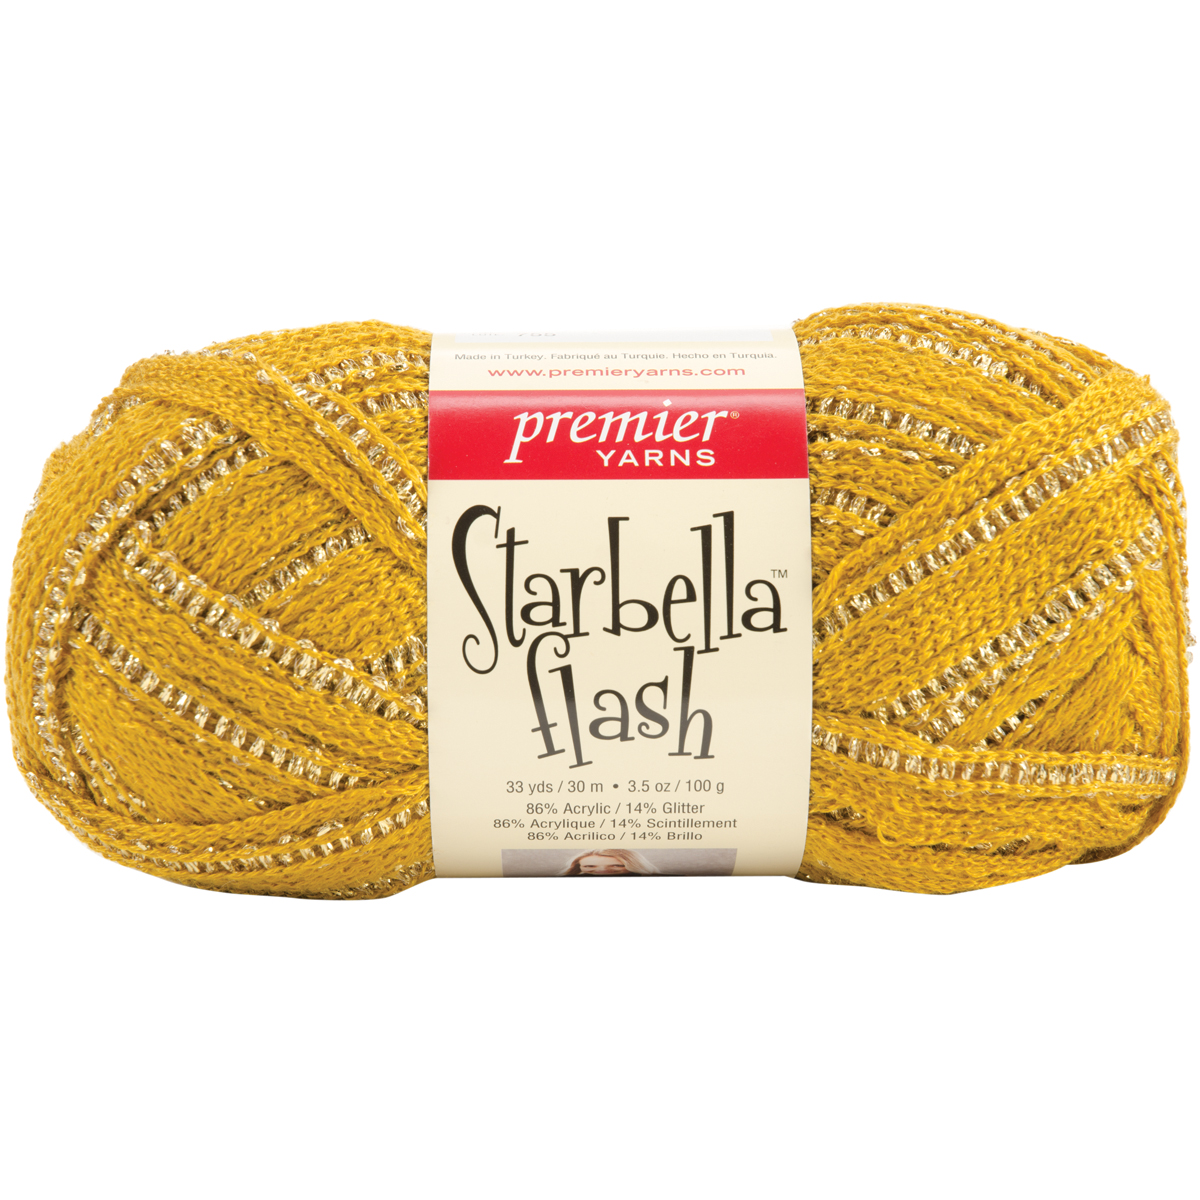 Premier Starbella Flash Yarn-Magic Lamp Multi-Colored